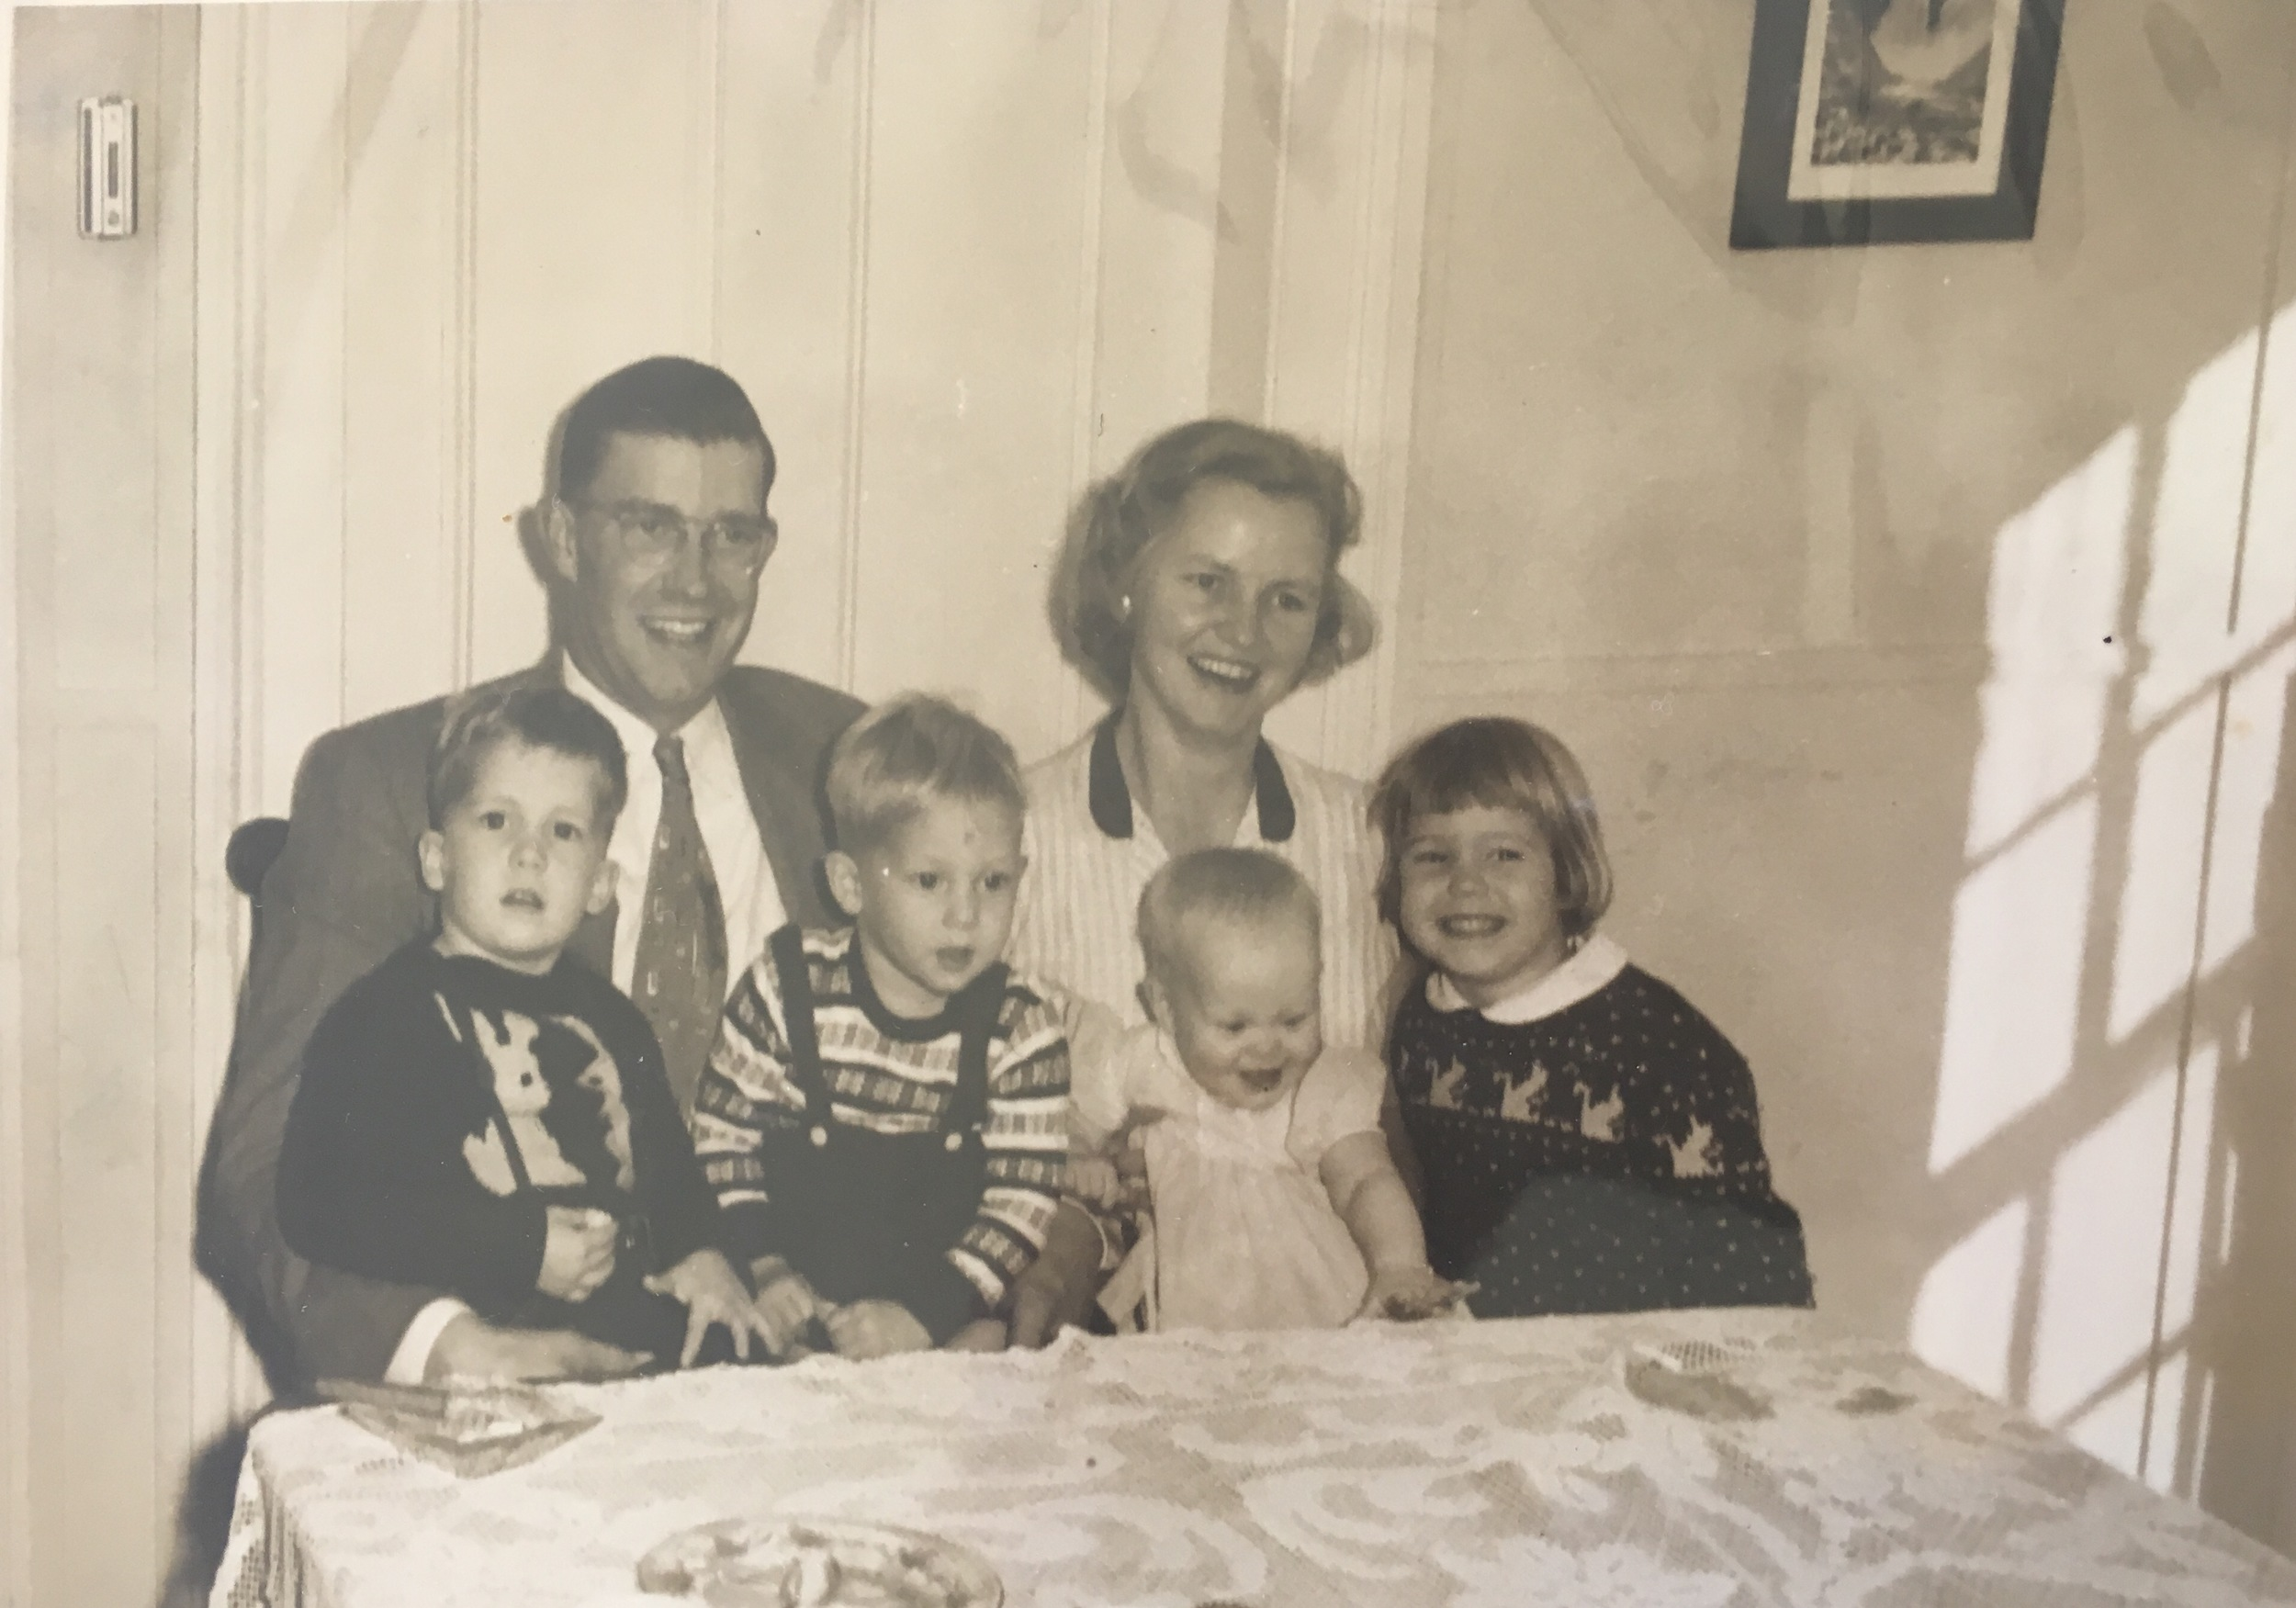 The family, 1953.